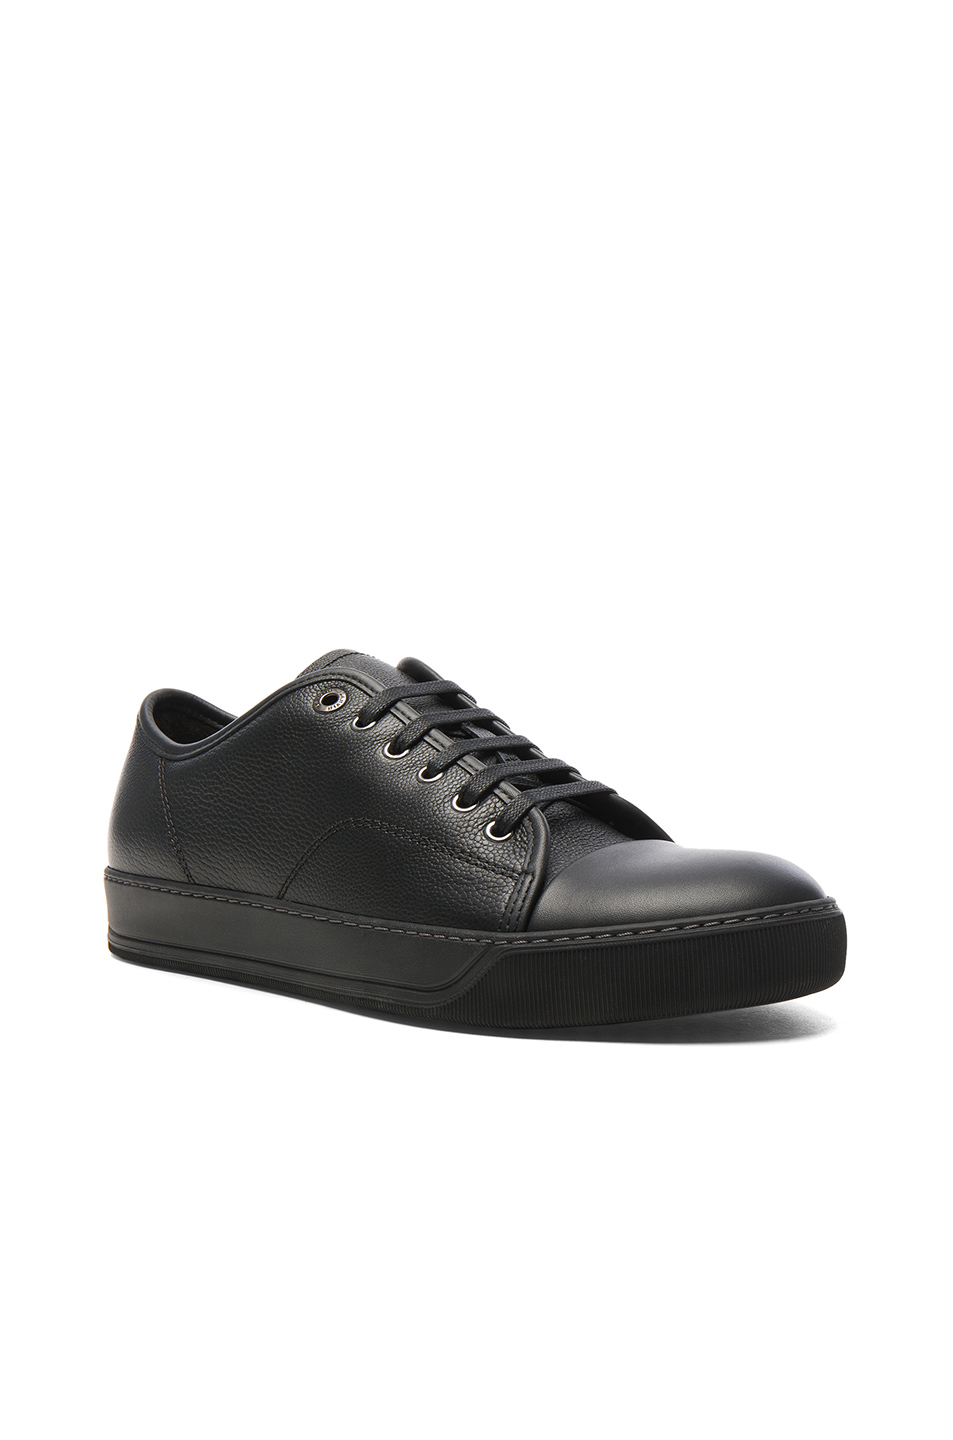 Lanvin Leather Low-Top Sneakers in Black